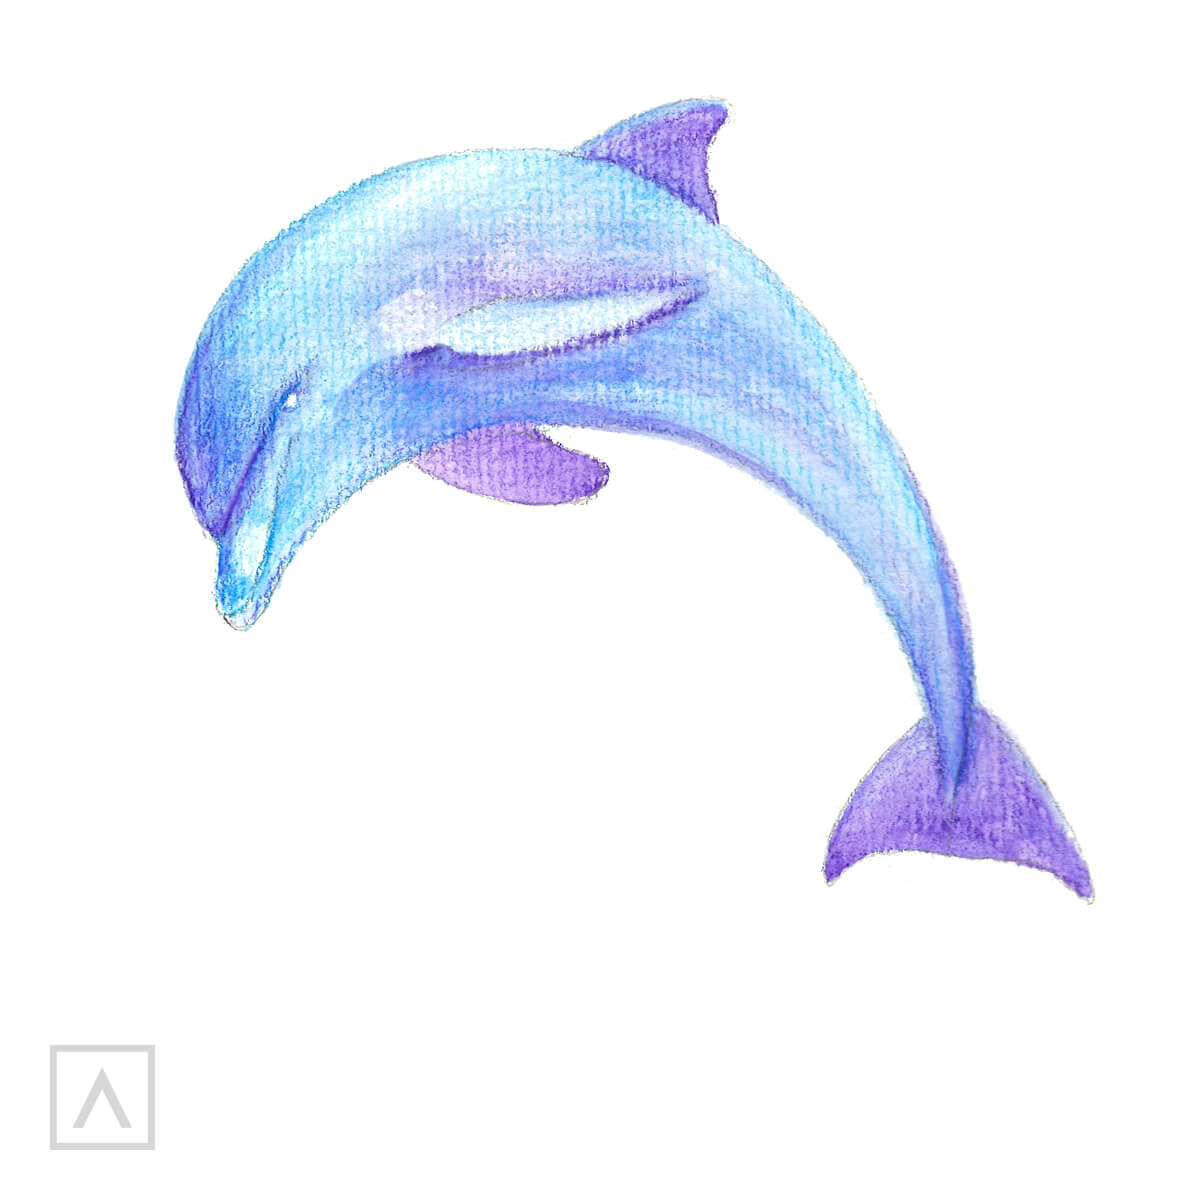 How to Draw a Dolphin - Step 5